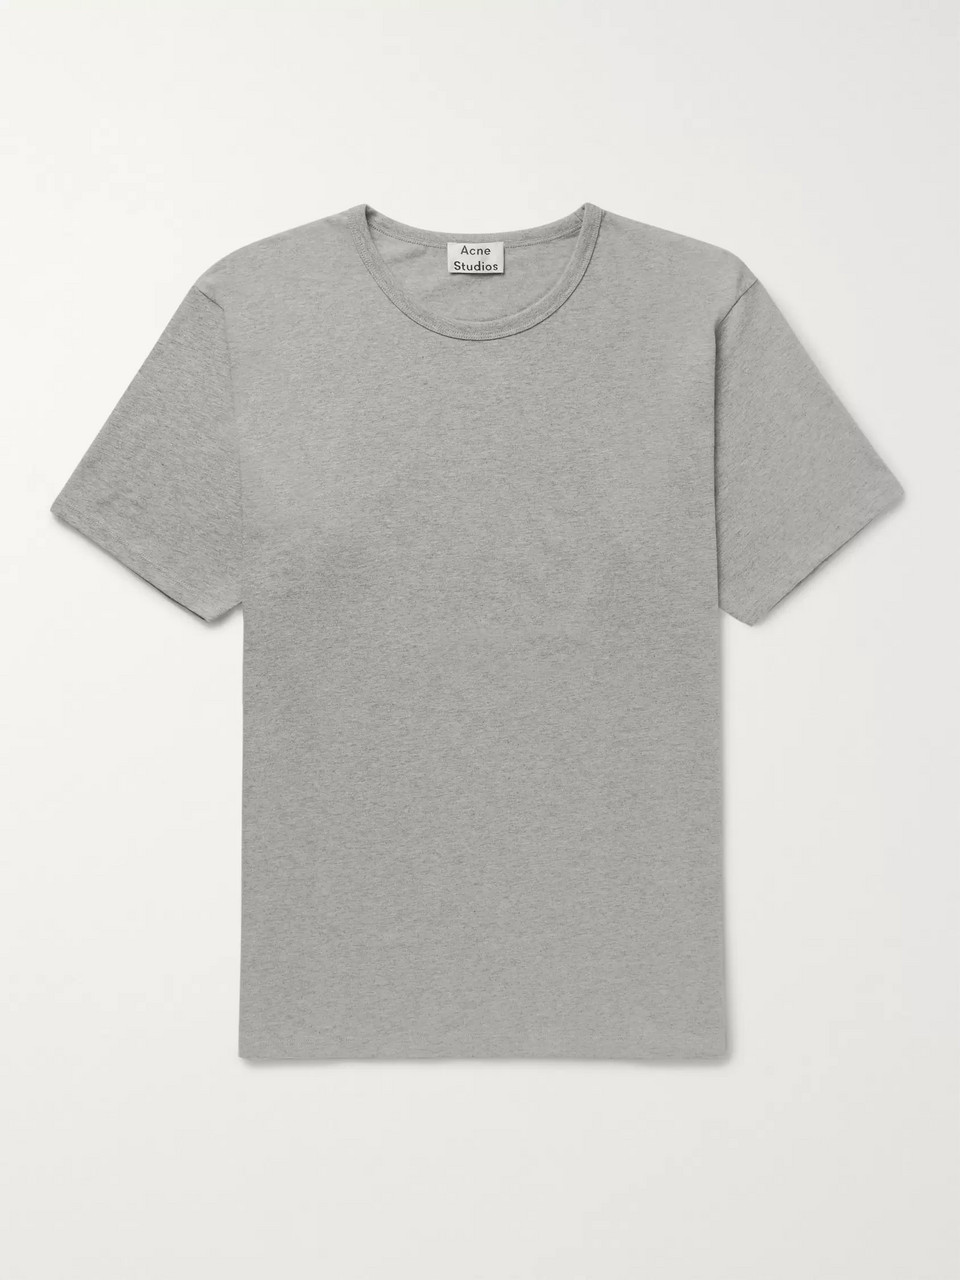 Acne Studios Niagara Cotton-Jersey T-Shirt